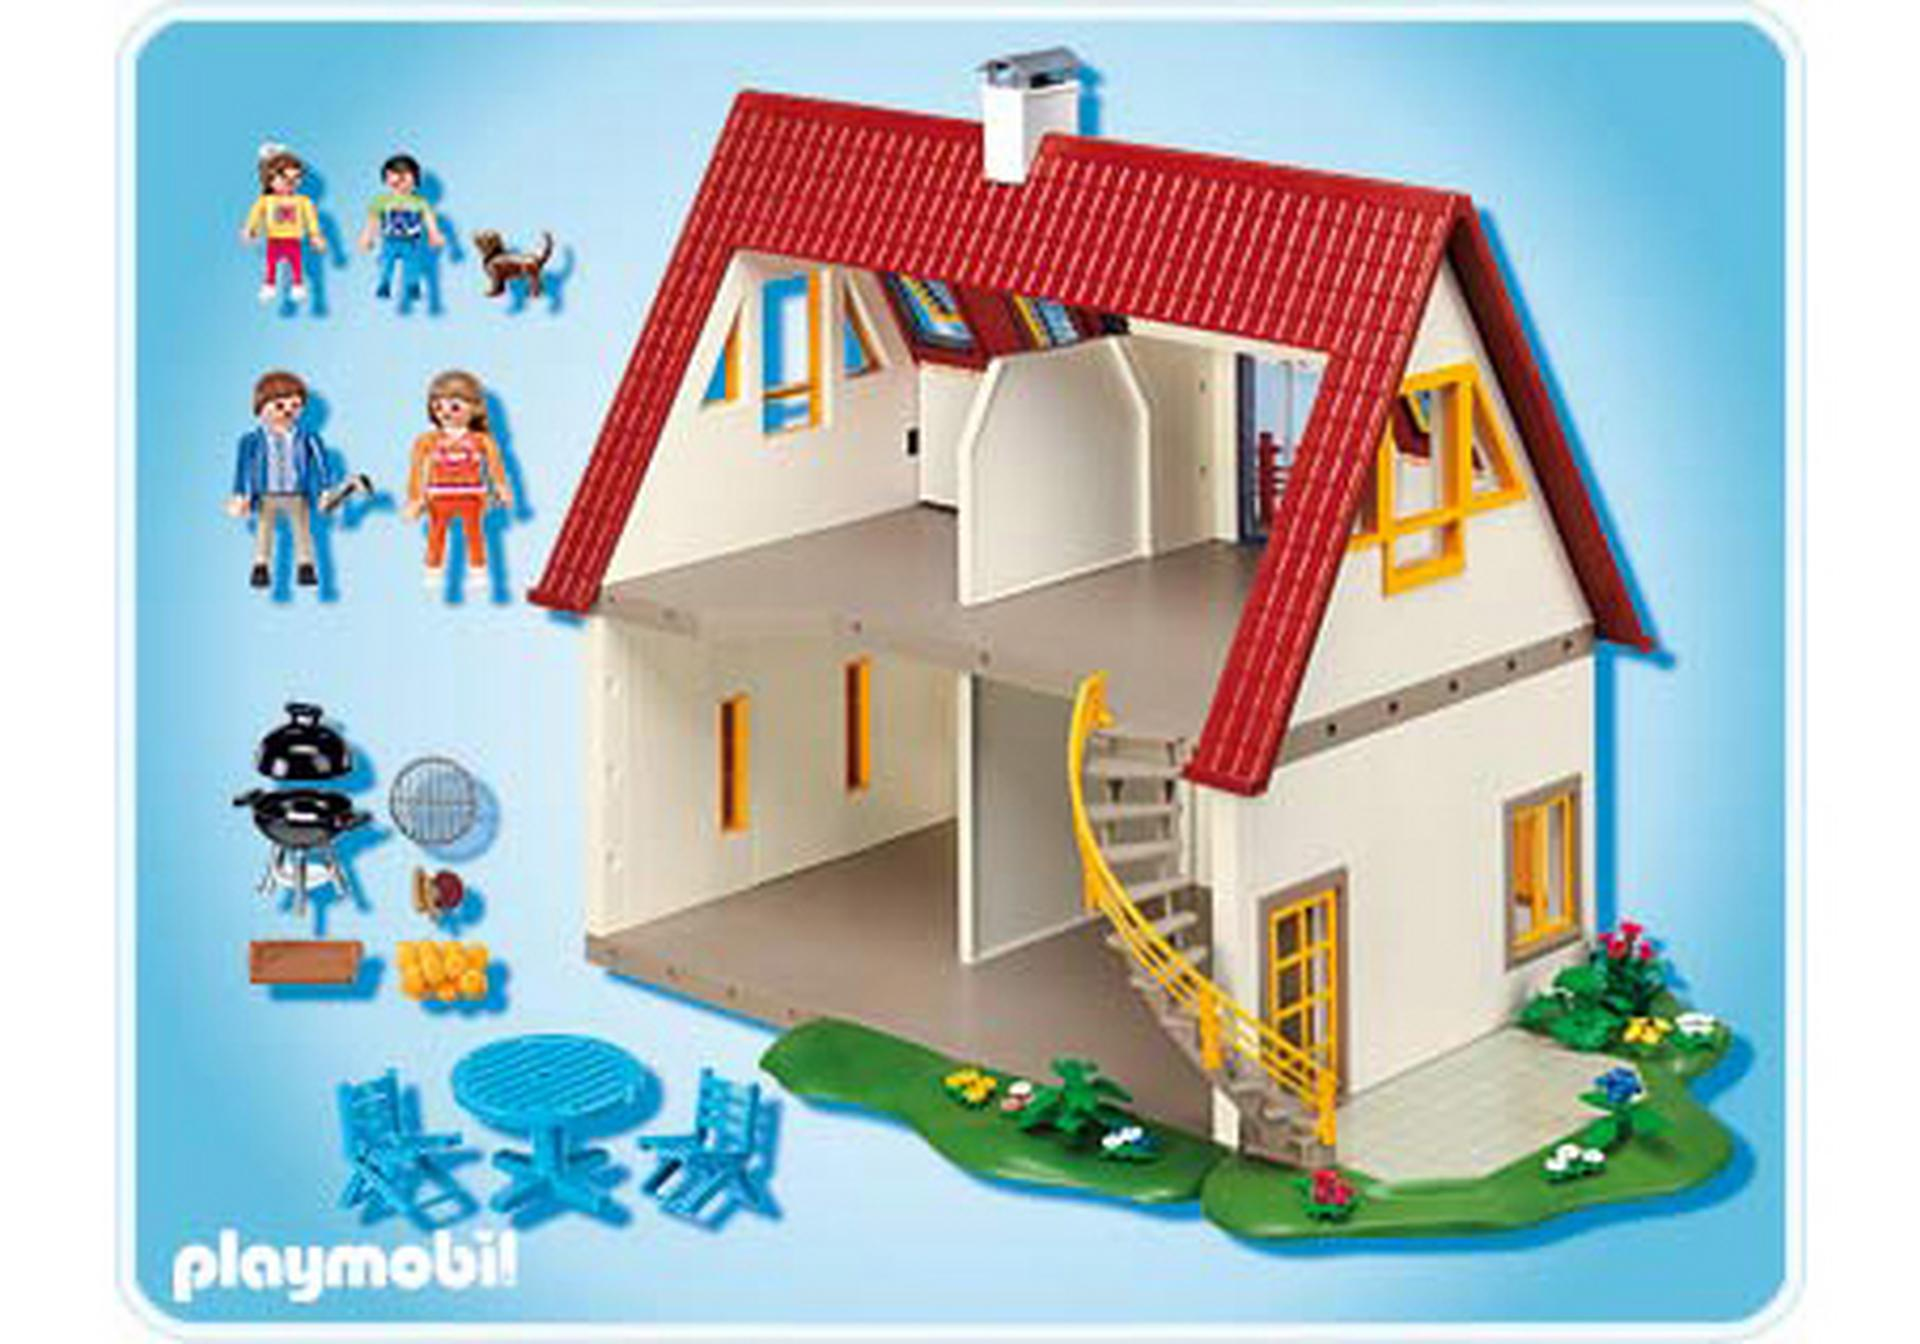 Villa moderne 4279 a playmobil france for Extension maison 4279